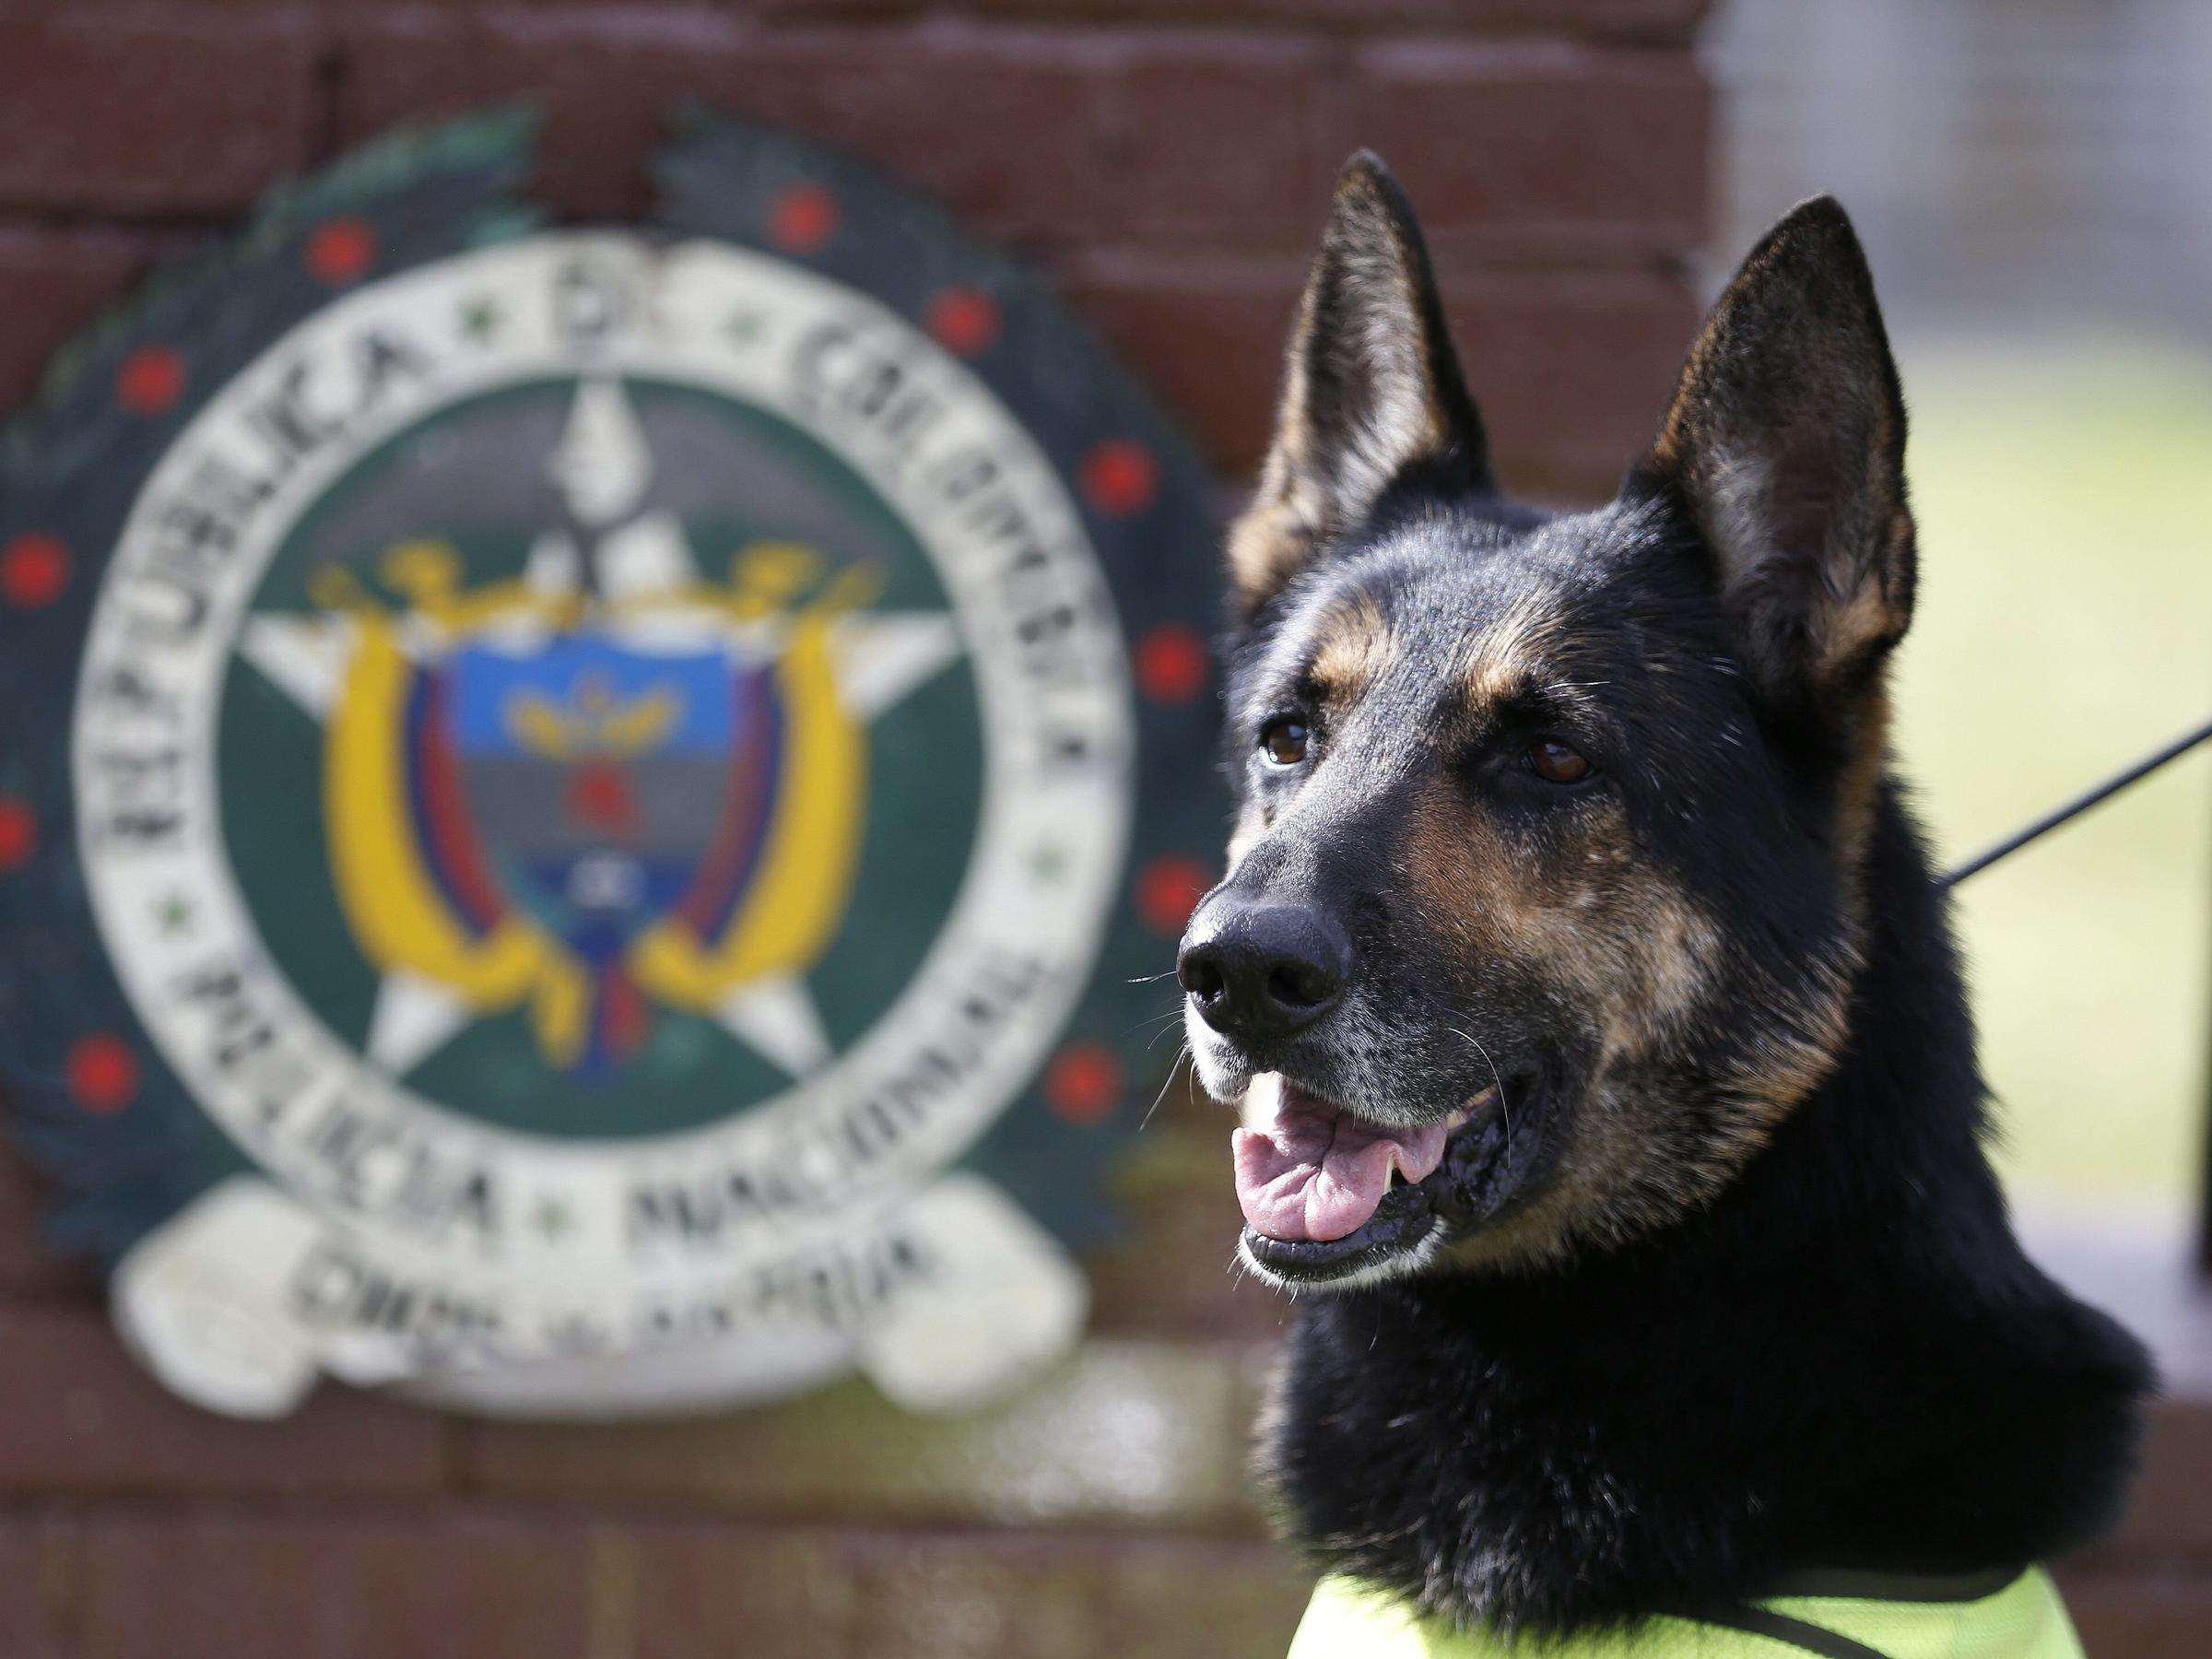 Sombra a drug-sniffing dog who works with Colombia's police was relocated after a criminal organization put a price on her head